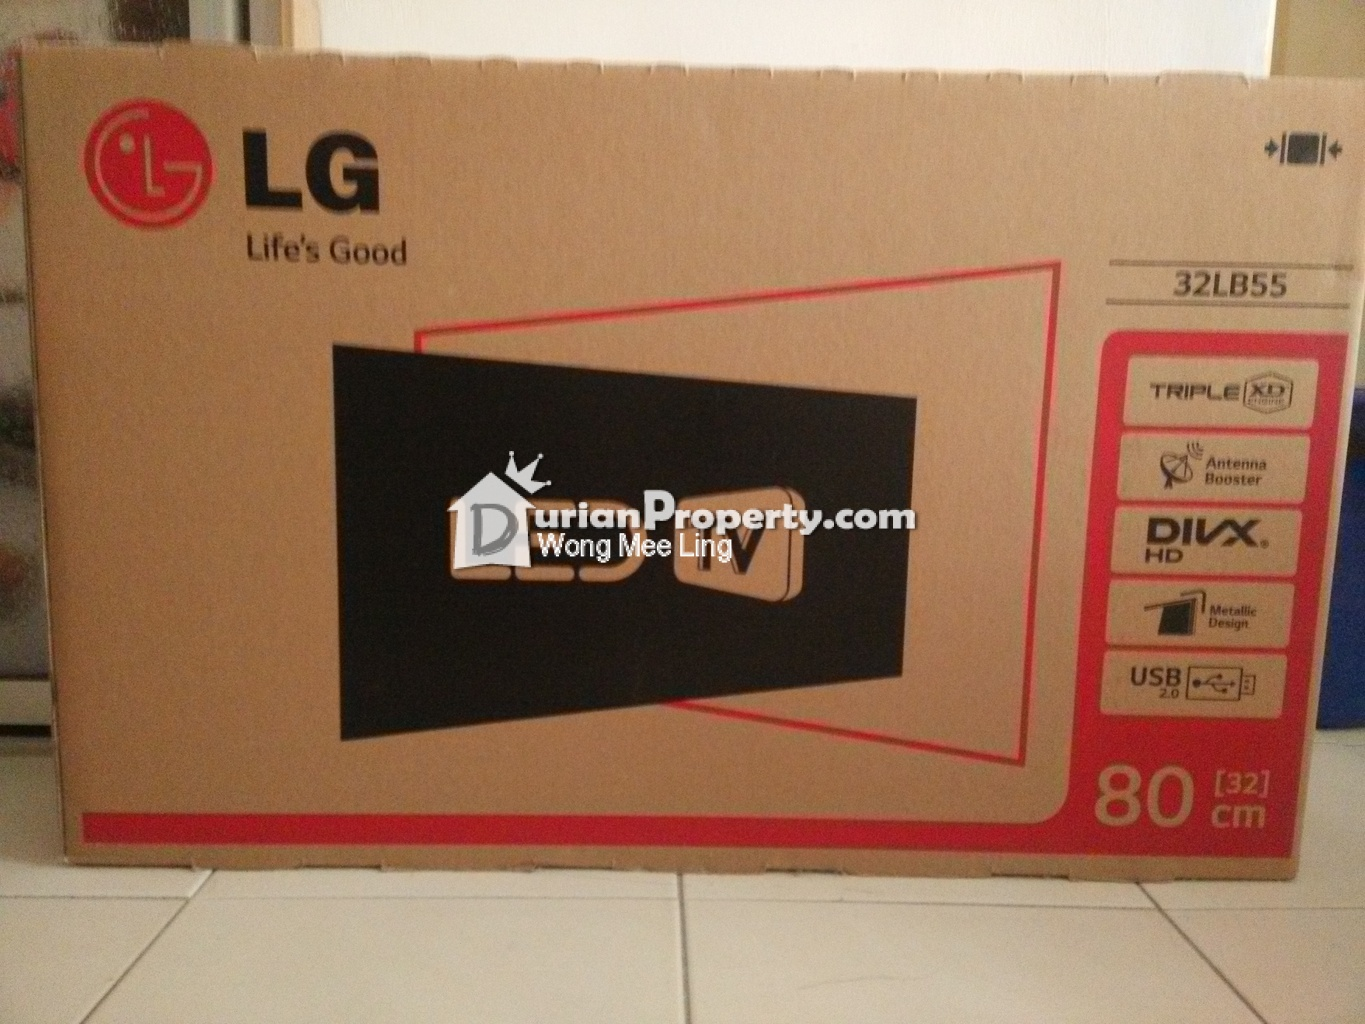 LG 32-inch LED TV (new) For Sale